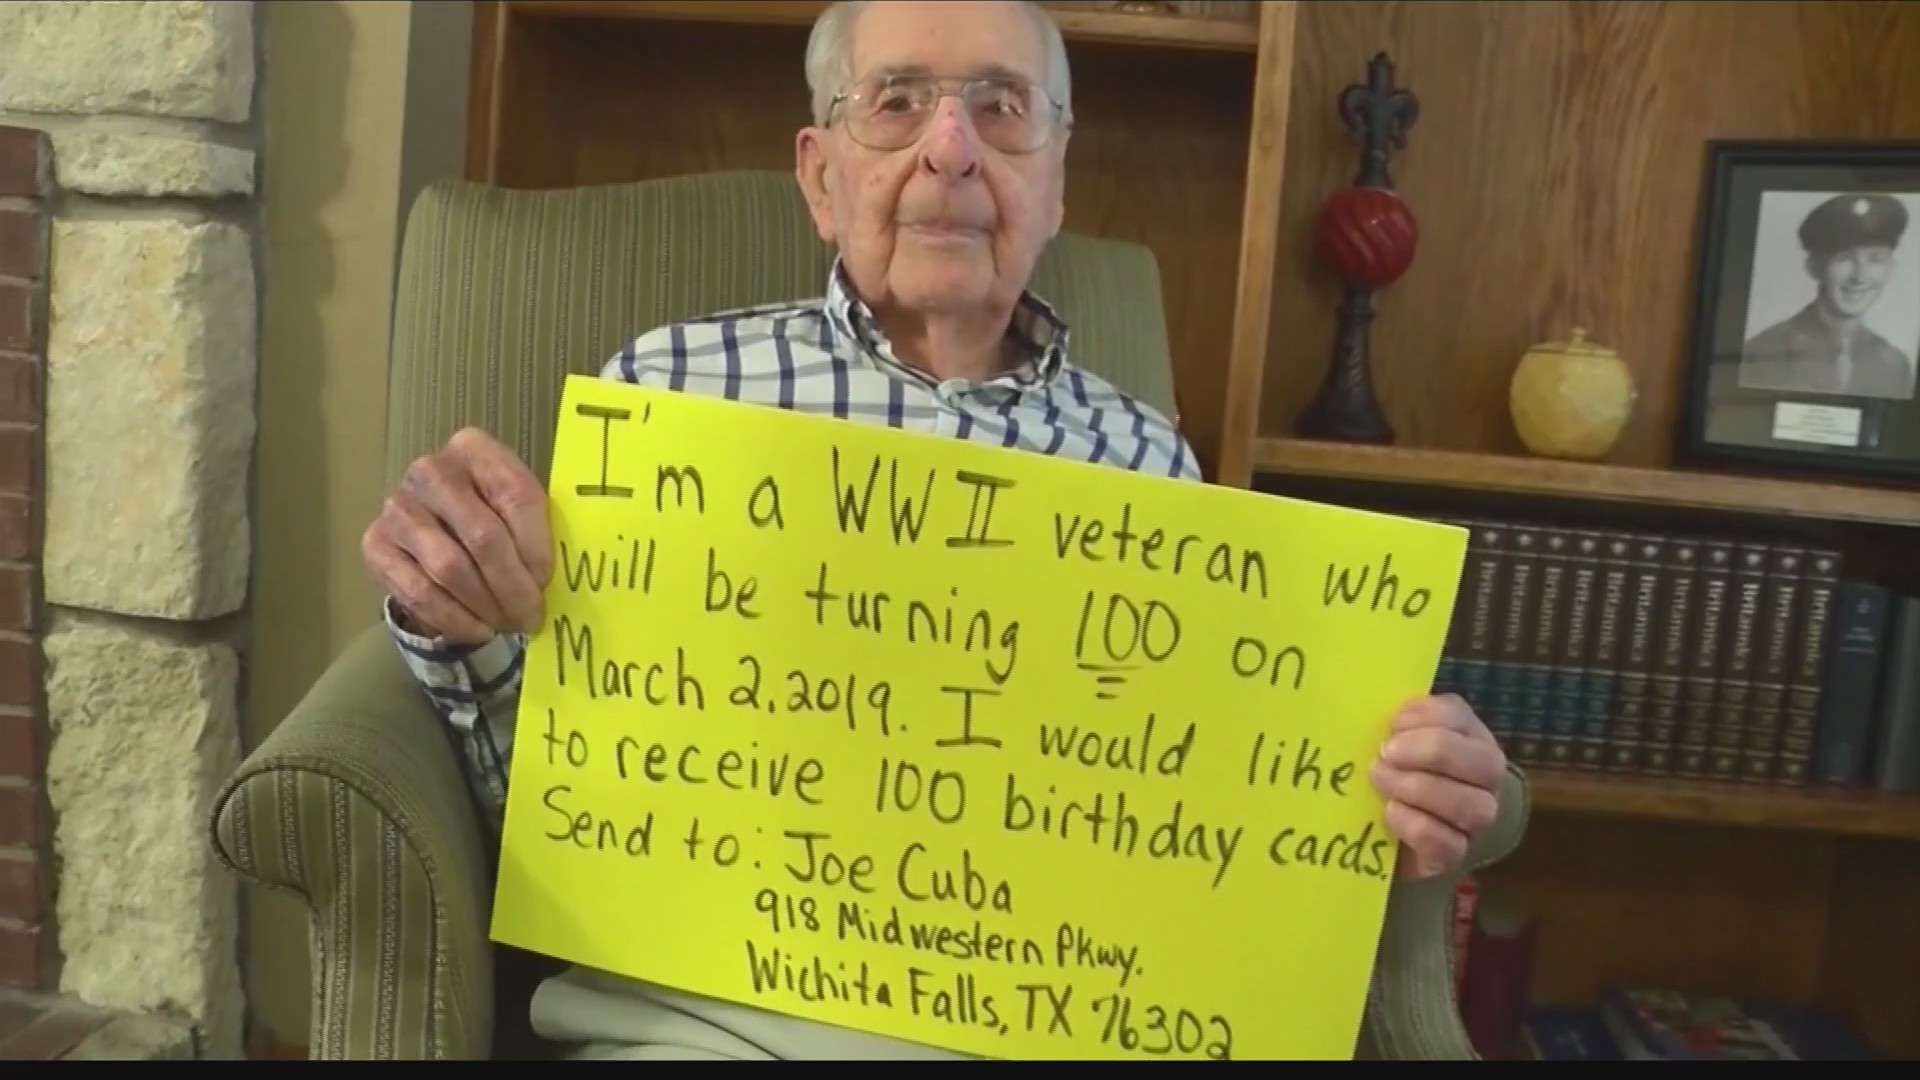 Motorcycle Club Travels to Visit Man for 100th Birthday